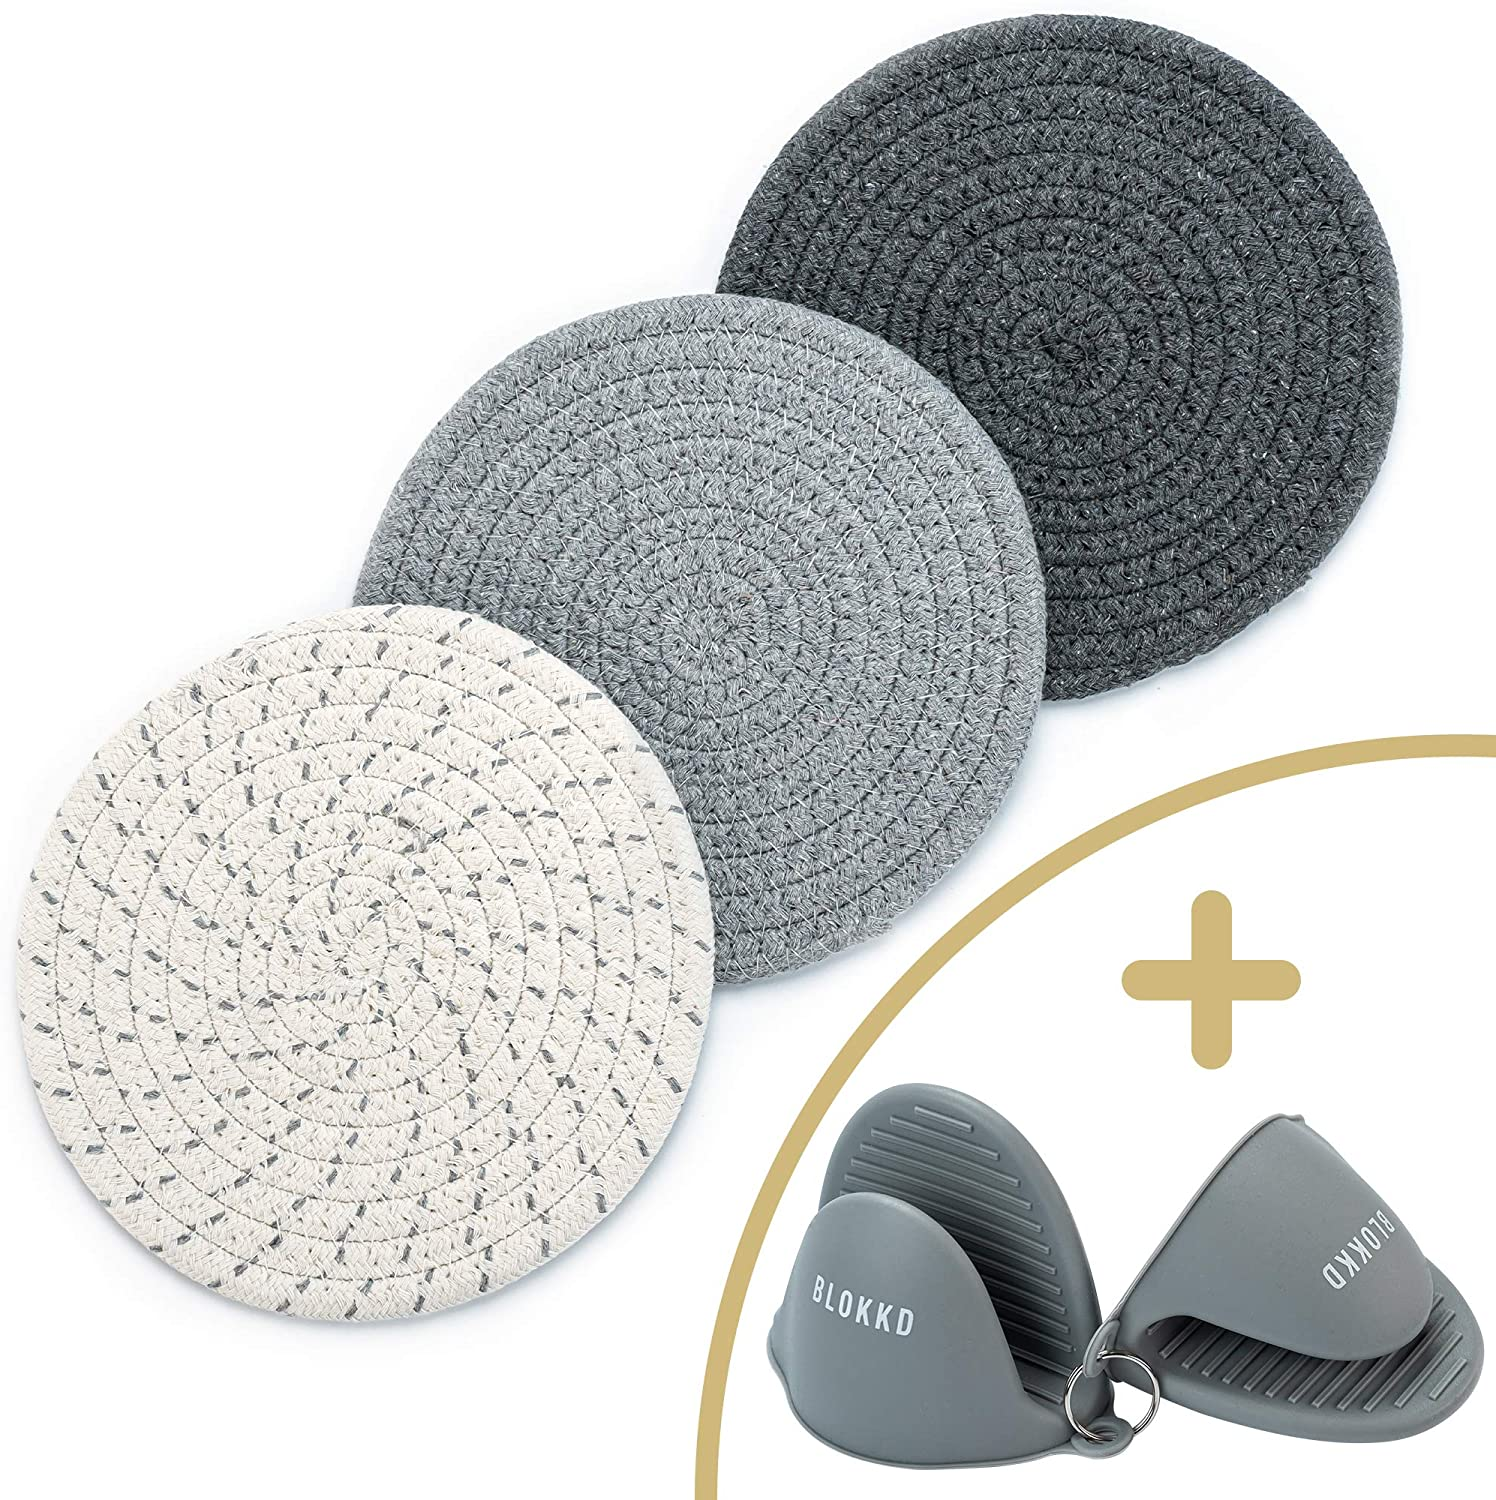 BLOKKD Trivets for Hot Pots and Pans and Silicone Pot Holder (Set of 5). Cotton Trivet Mats with Silicone Oven Mitt Set. Hot Pad Coasters for Farmhouse Decor, Spoon Rest, Hot Pads and Oven Mitts Sets